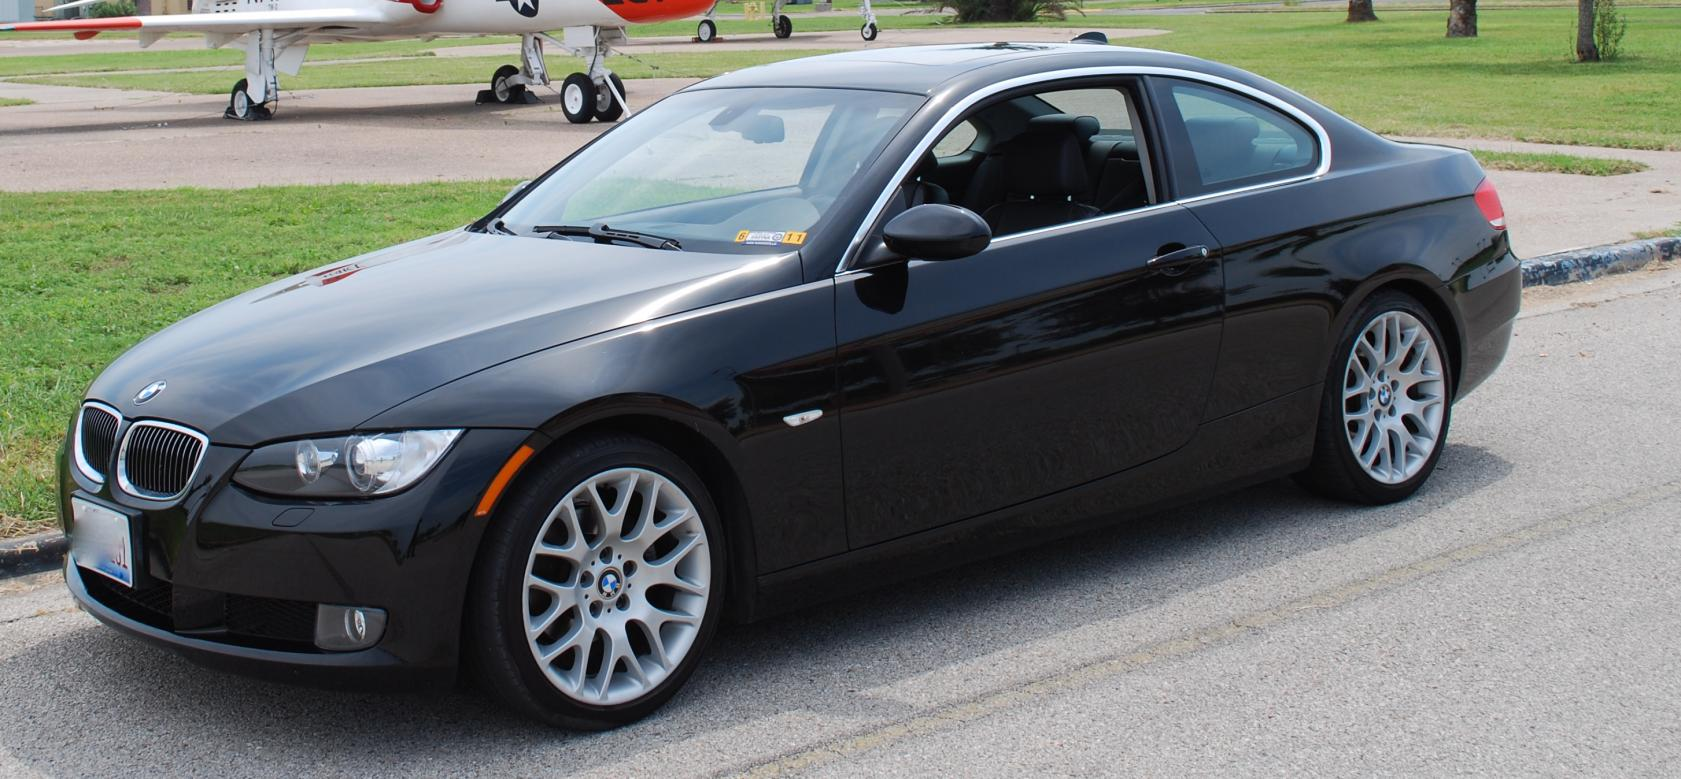 used pistonheads coupe classifieds cars with sale as z series bmw for m